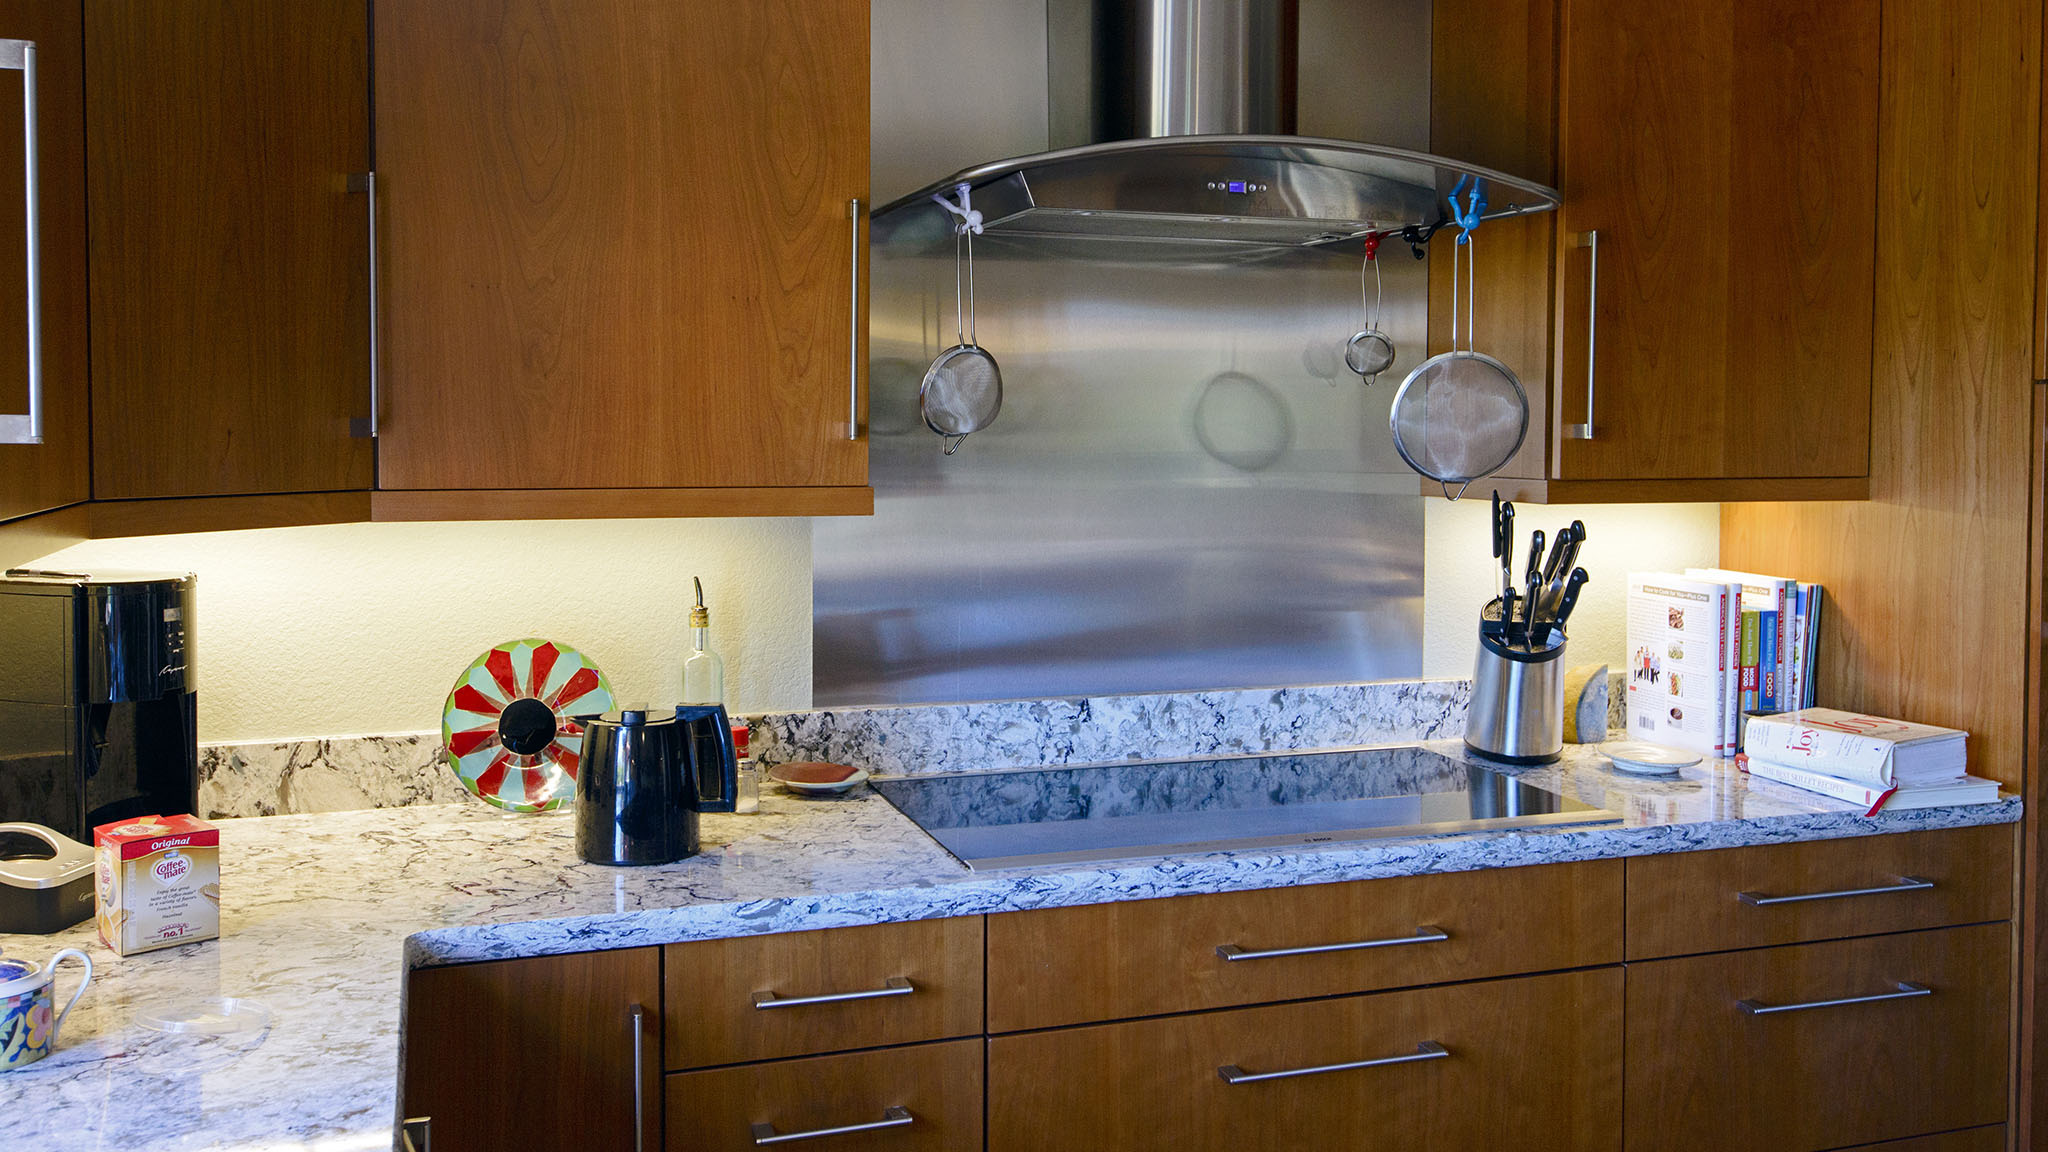 Led Lighting For Kitchen How To Improve Your Home With Led Lighting Tested